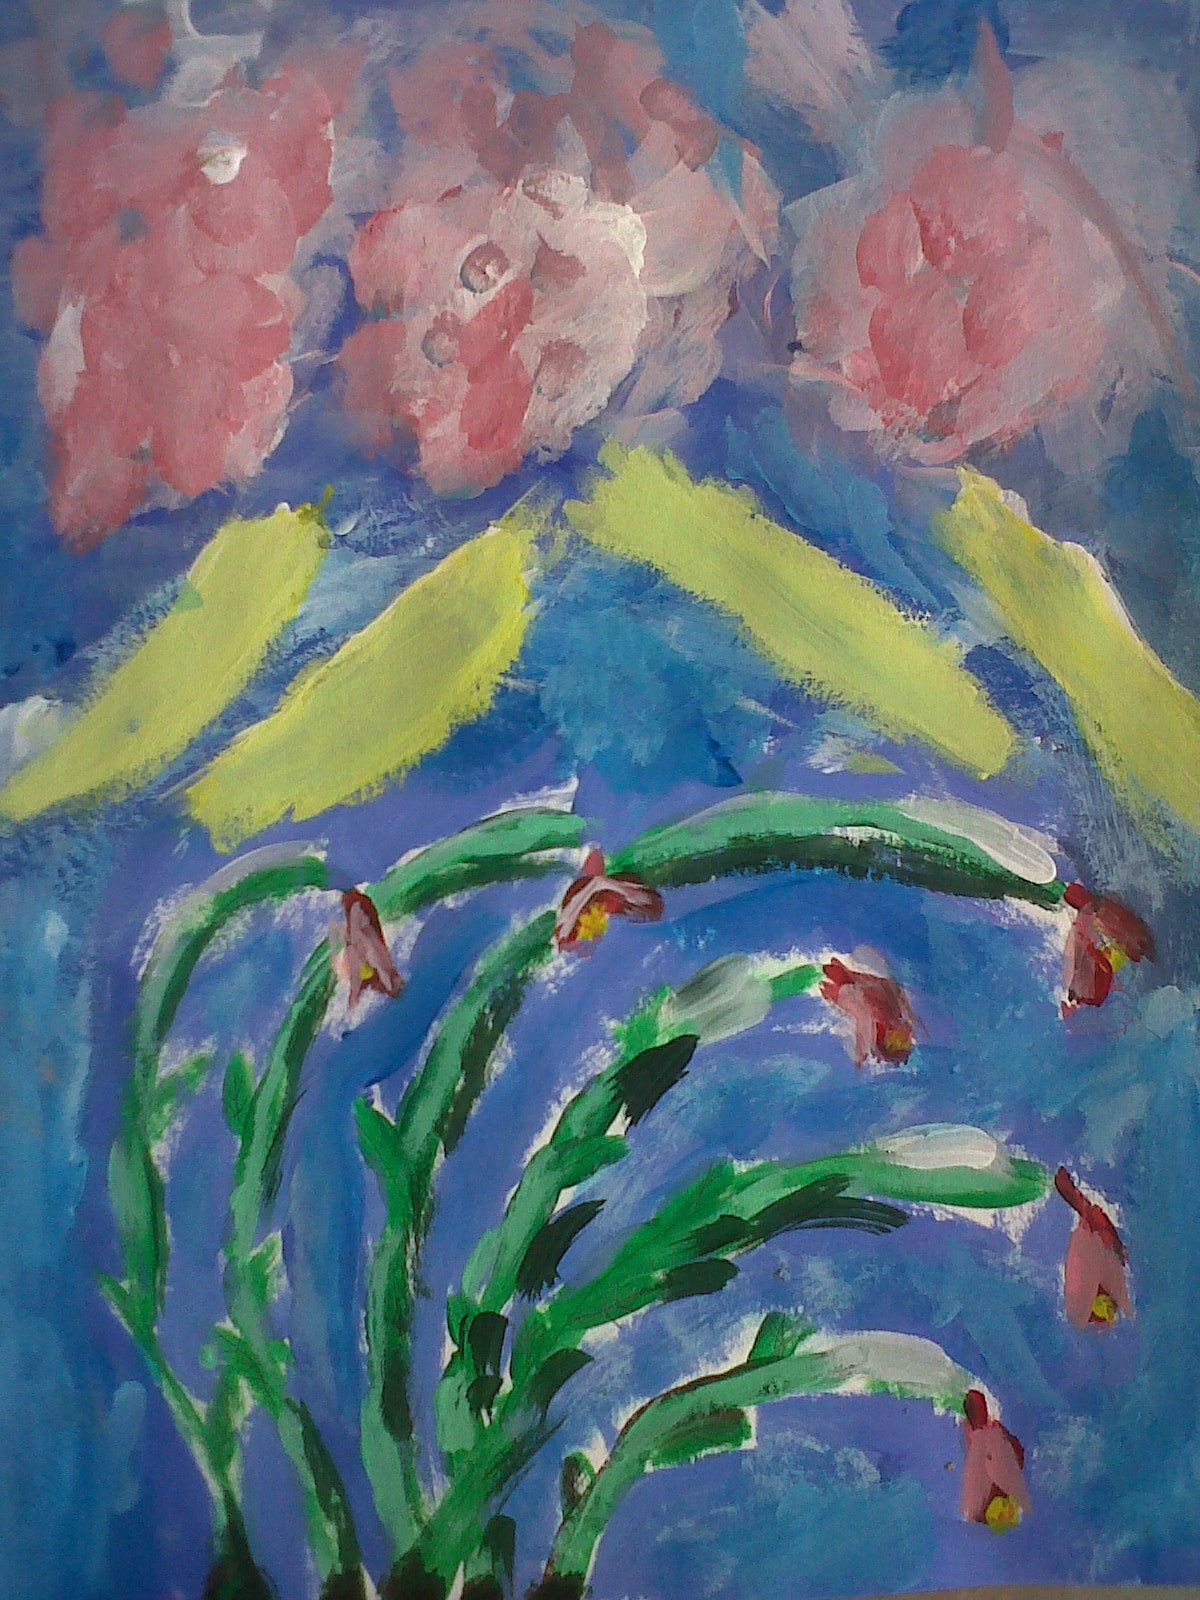 Tennyson Swail Age 7- Cactus and Sunrays.jpg